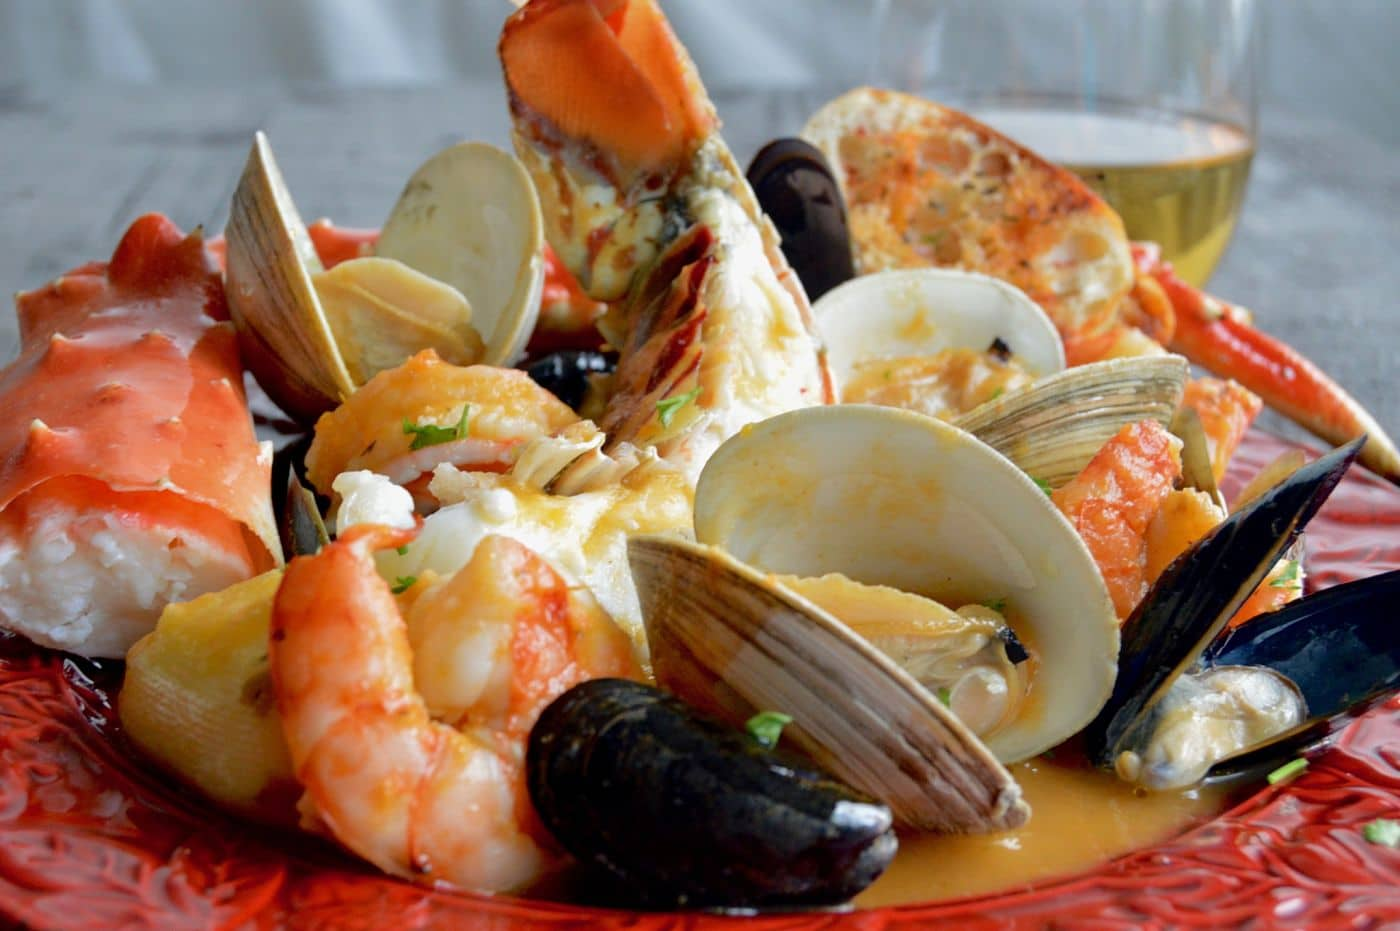 Fancy Bouillabaisse is full of shrimp, lobster, crab and all the good things that make a great romantic meal! Ready in less than 45 minutes is just a bonus!